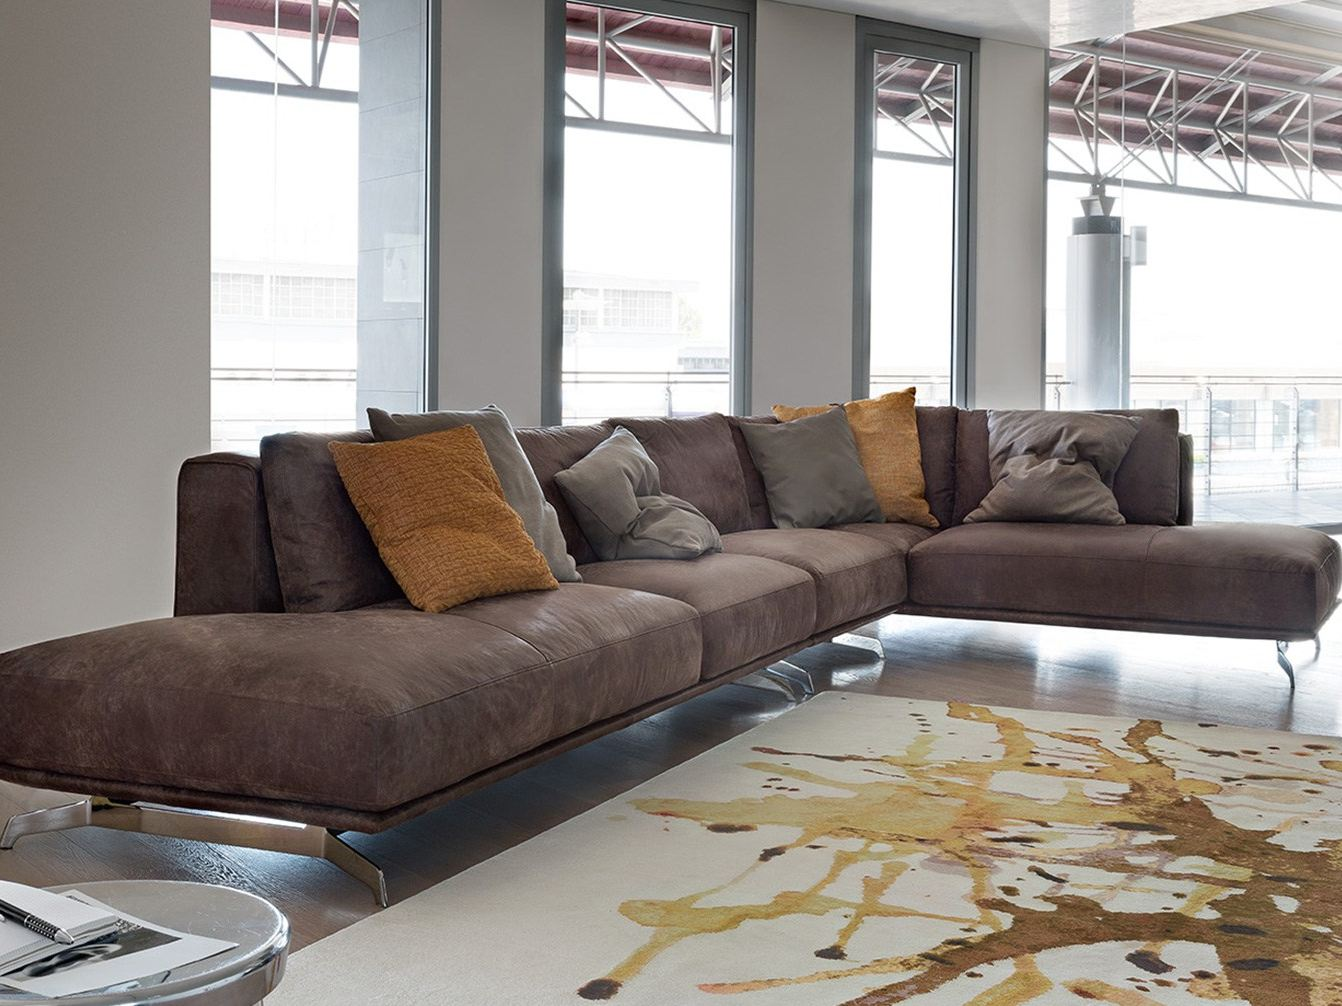 SECTIONAL IMITATION LEATHER SOFA DALTON LEATHER  CORNER SOFA BY DITRE ITALIA  DESIGN STEFANO ...